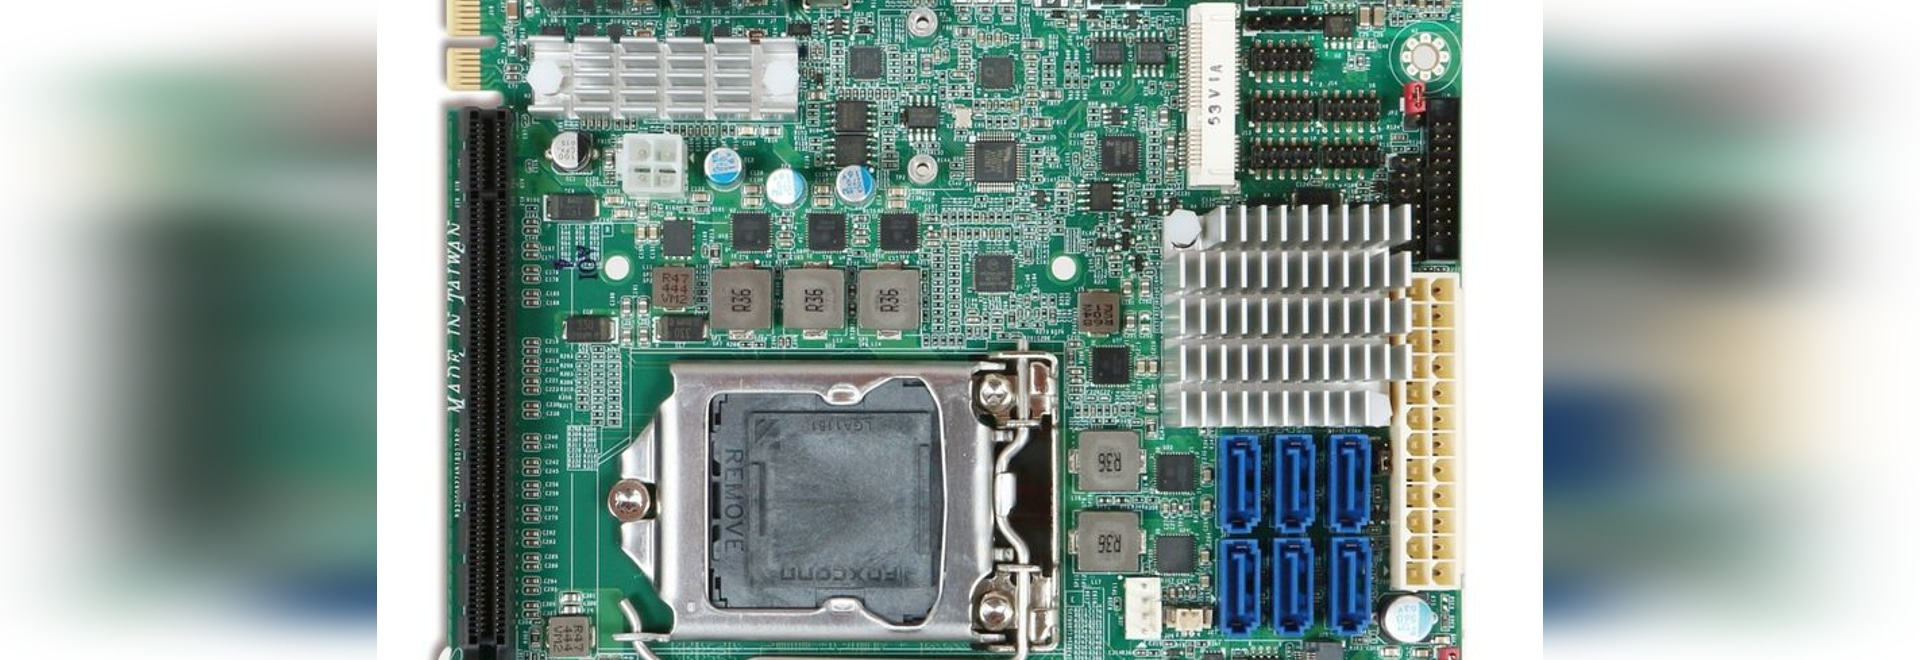 NEW: embedded single-board computer by PORTWELL - PORTWELL